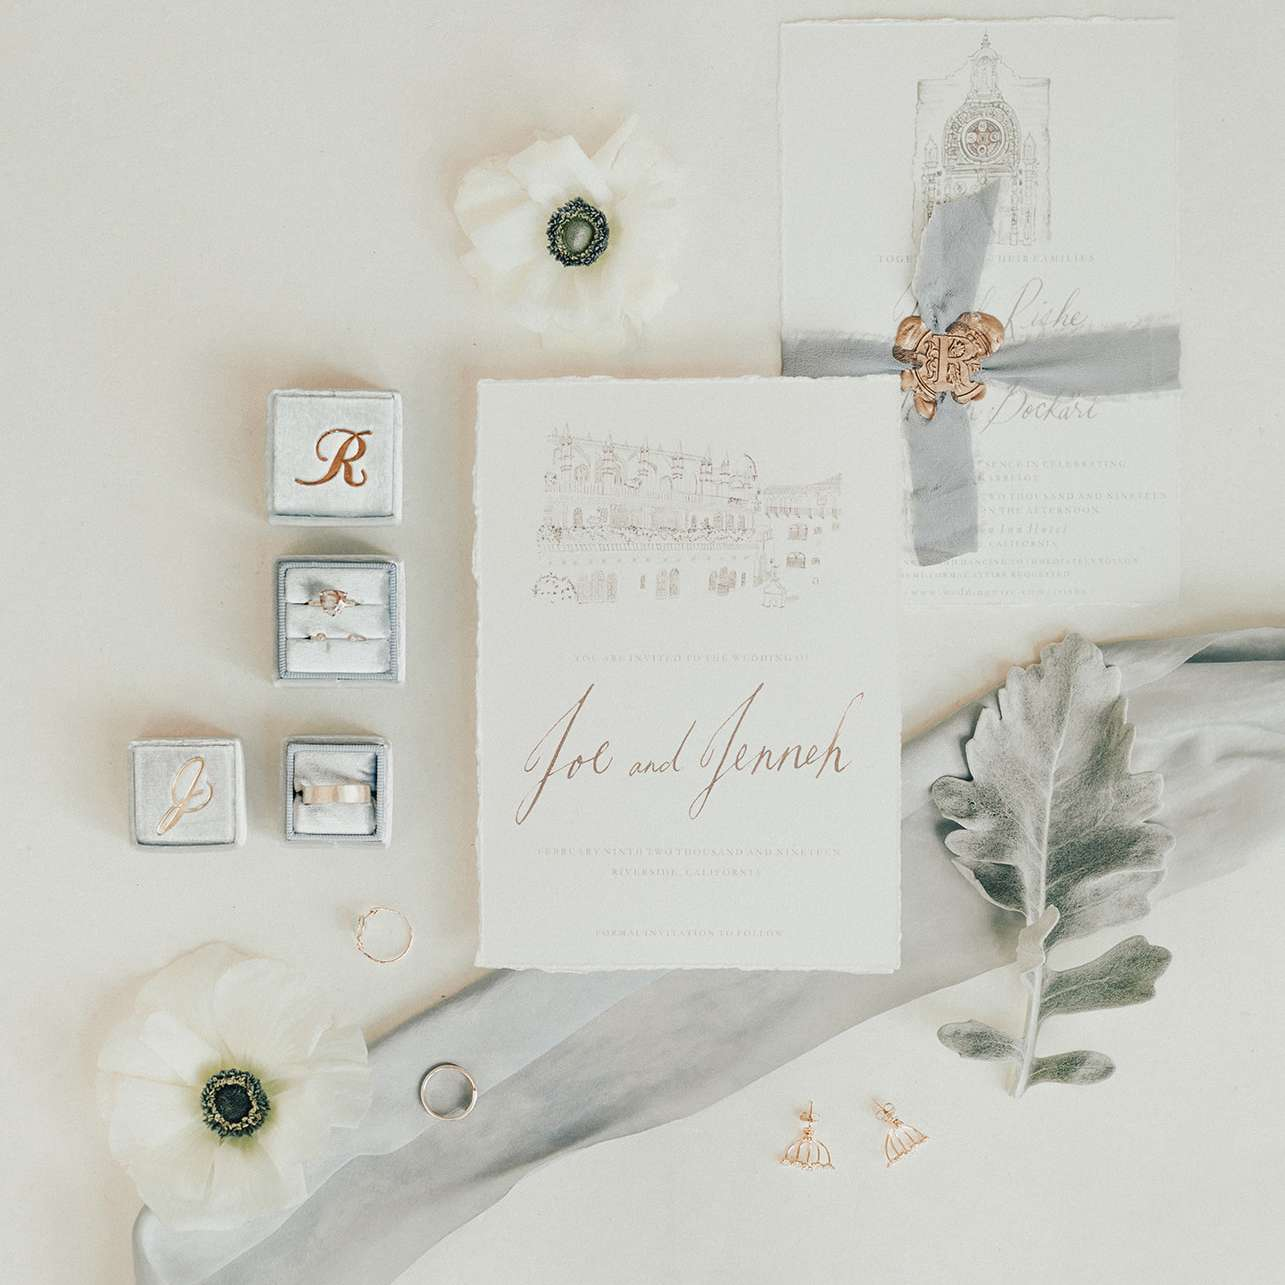 invitation and rings